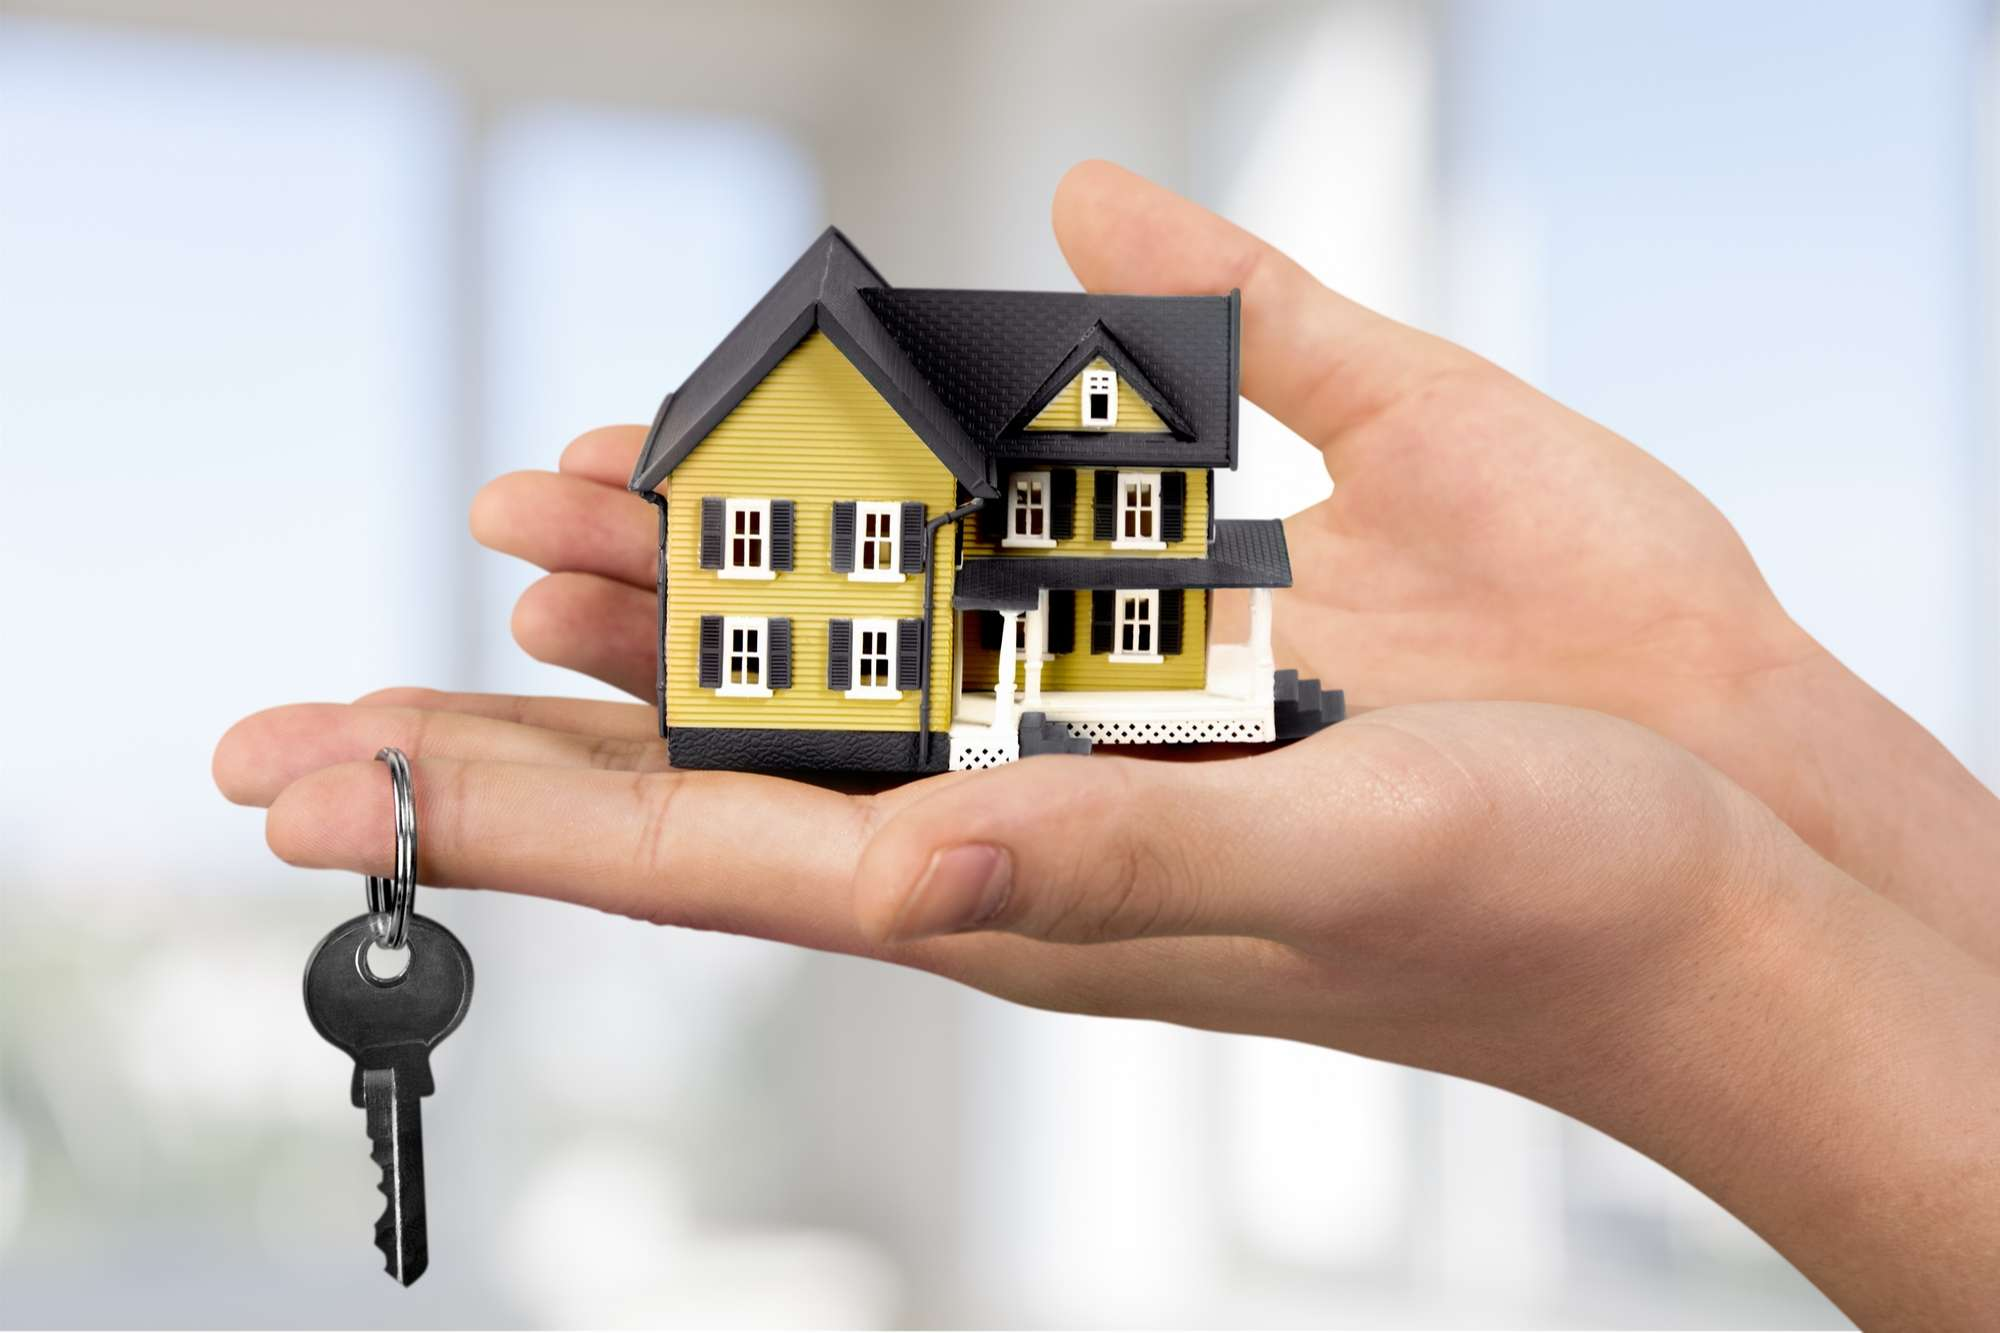 2. Tips to Maintain Your Properties